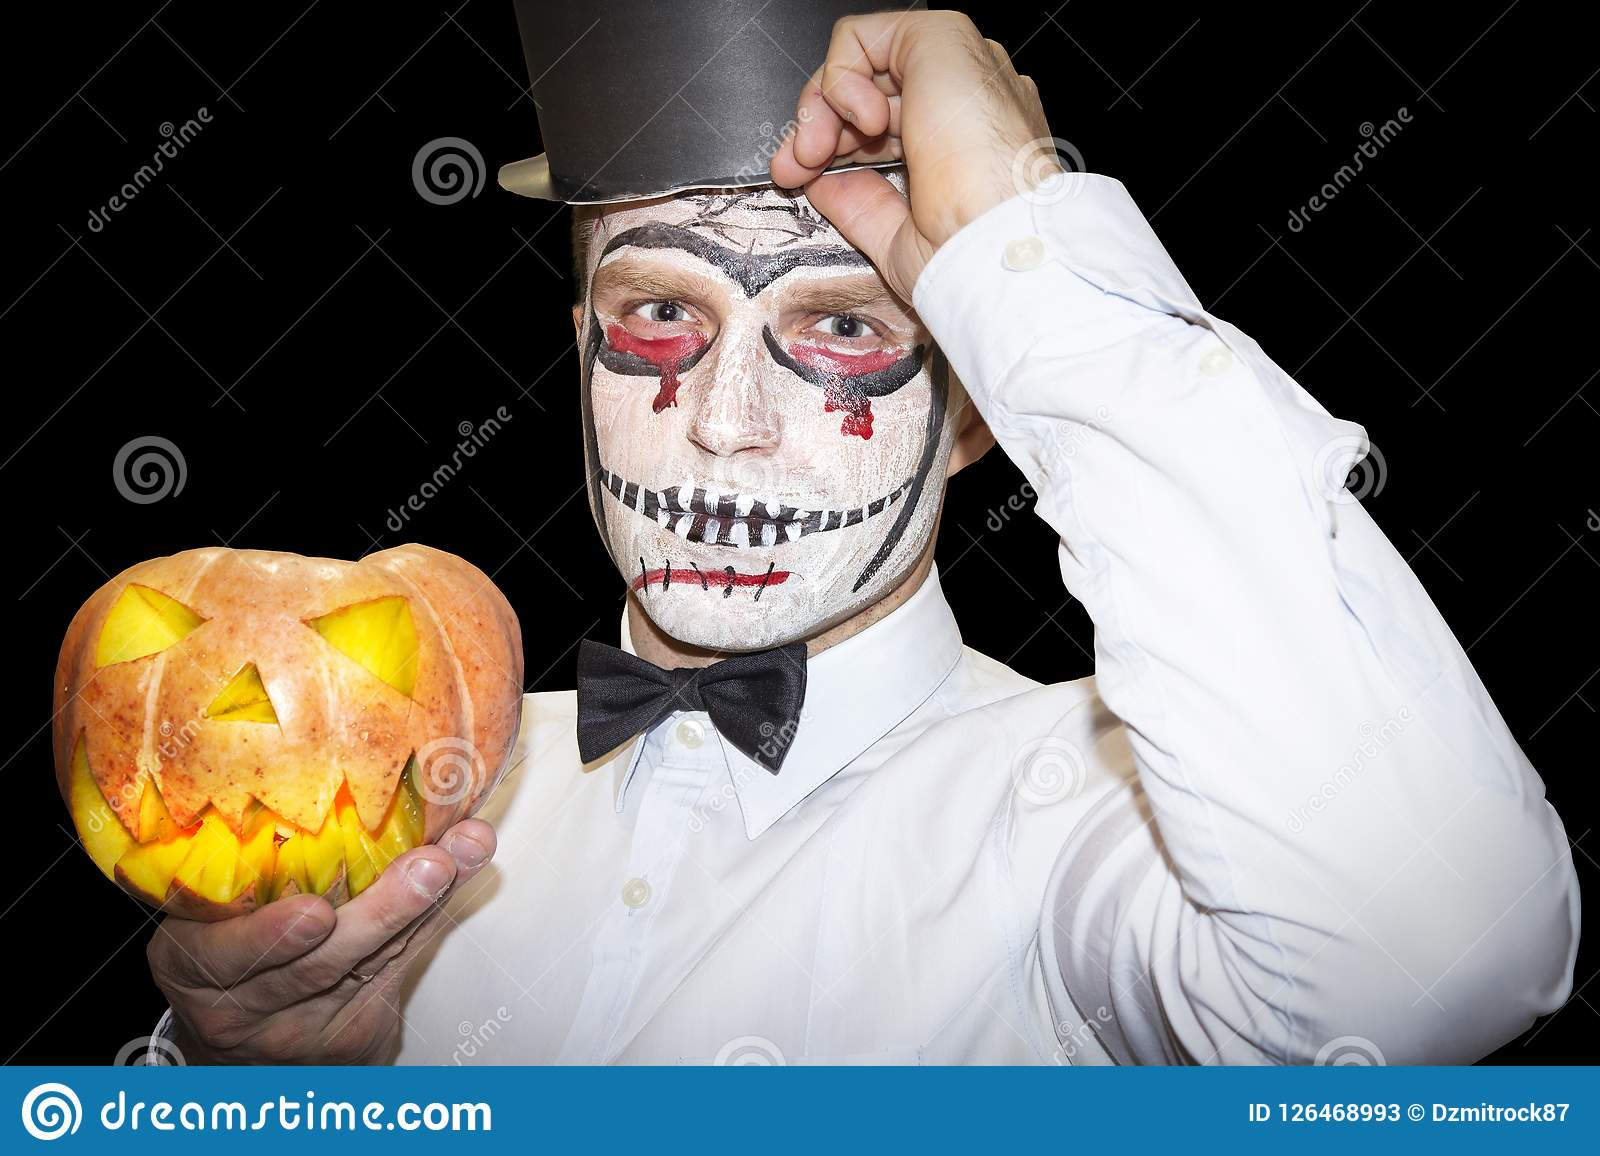 Halloween Maan.Halloween Man With Makeup Holds Yellow Pumpkin On Black